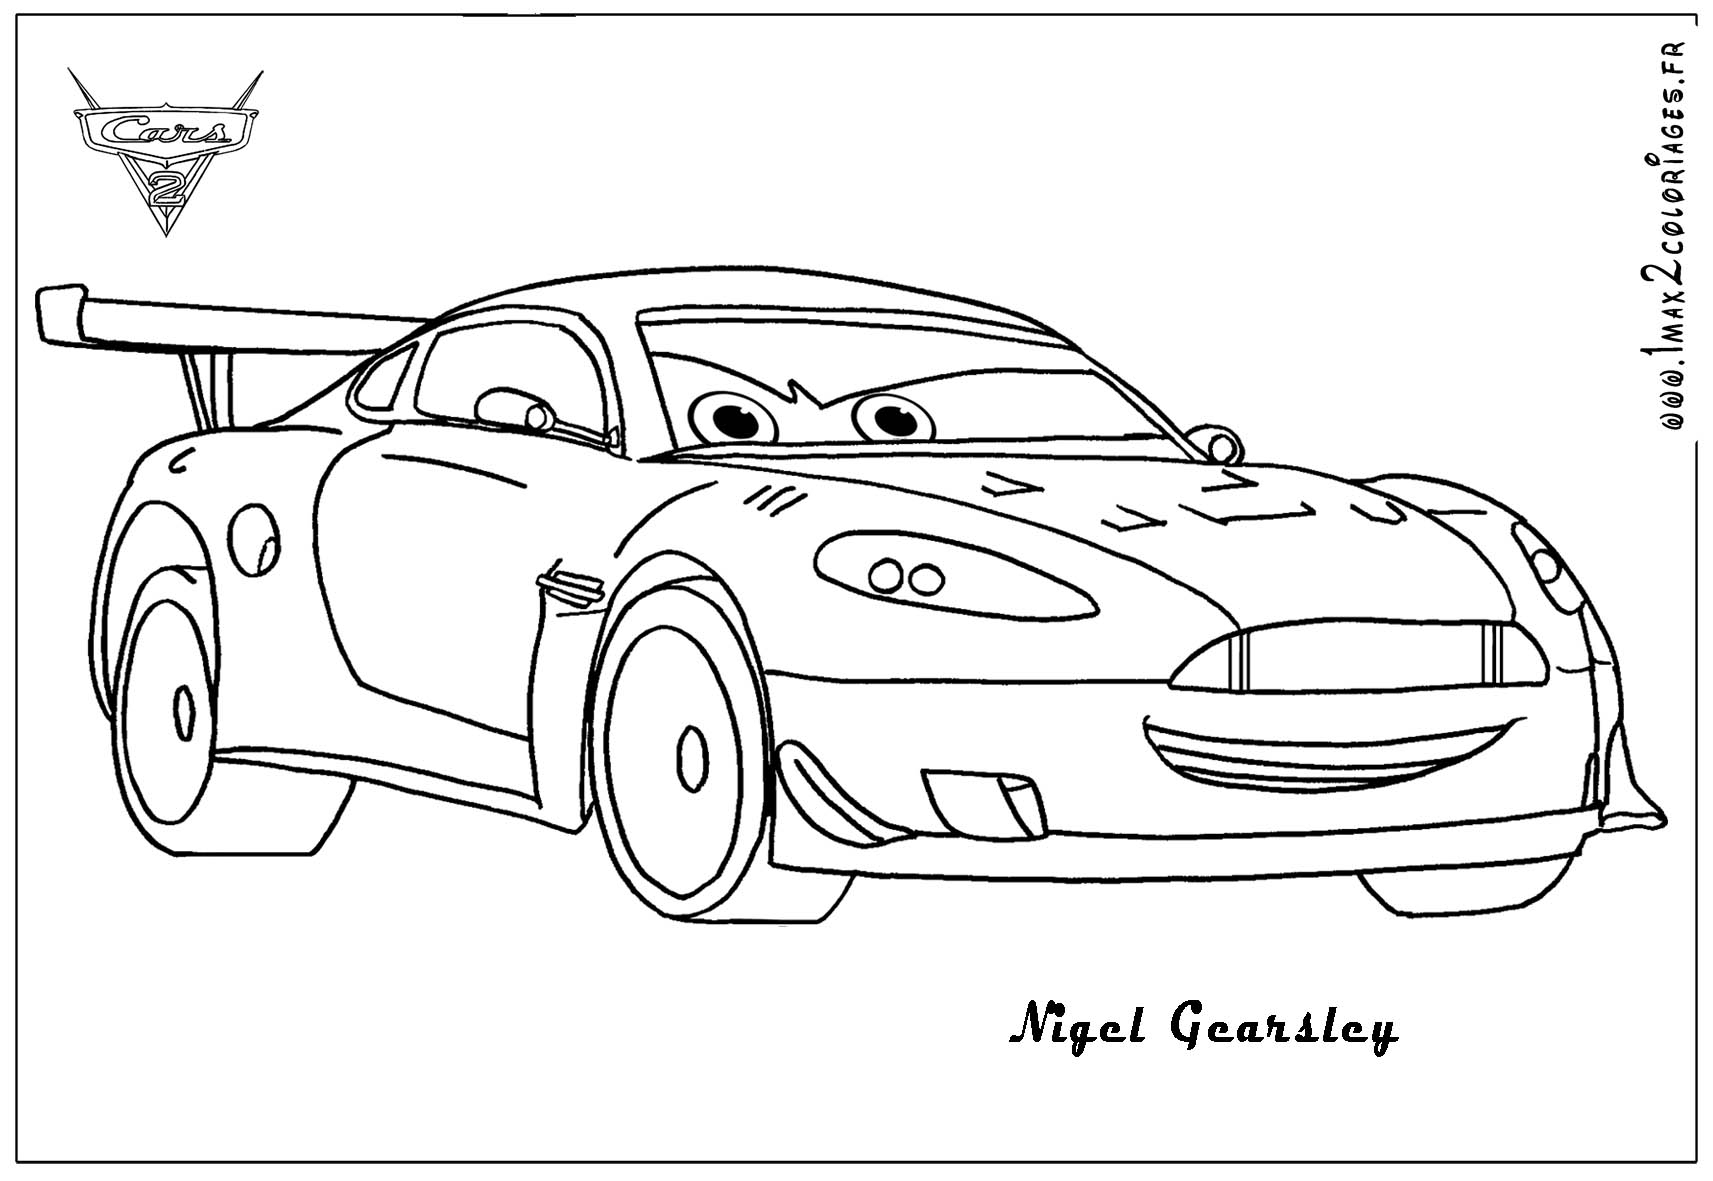 Cars 2 to Color 14 Nigel Cars 2 Mcqueen Coloring to Print Of Cars 2 Coloring Pages with Cars 2 Coloring Pages with Cars 2 Gallery